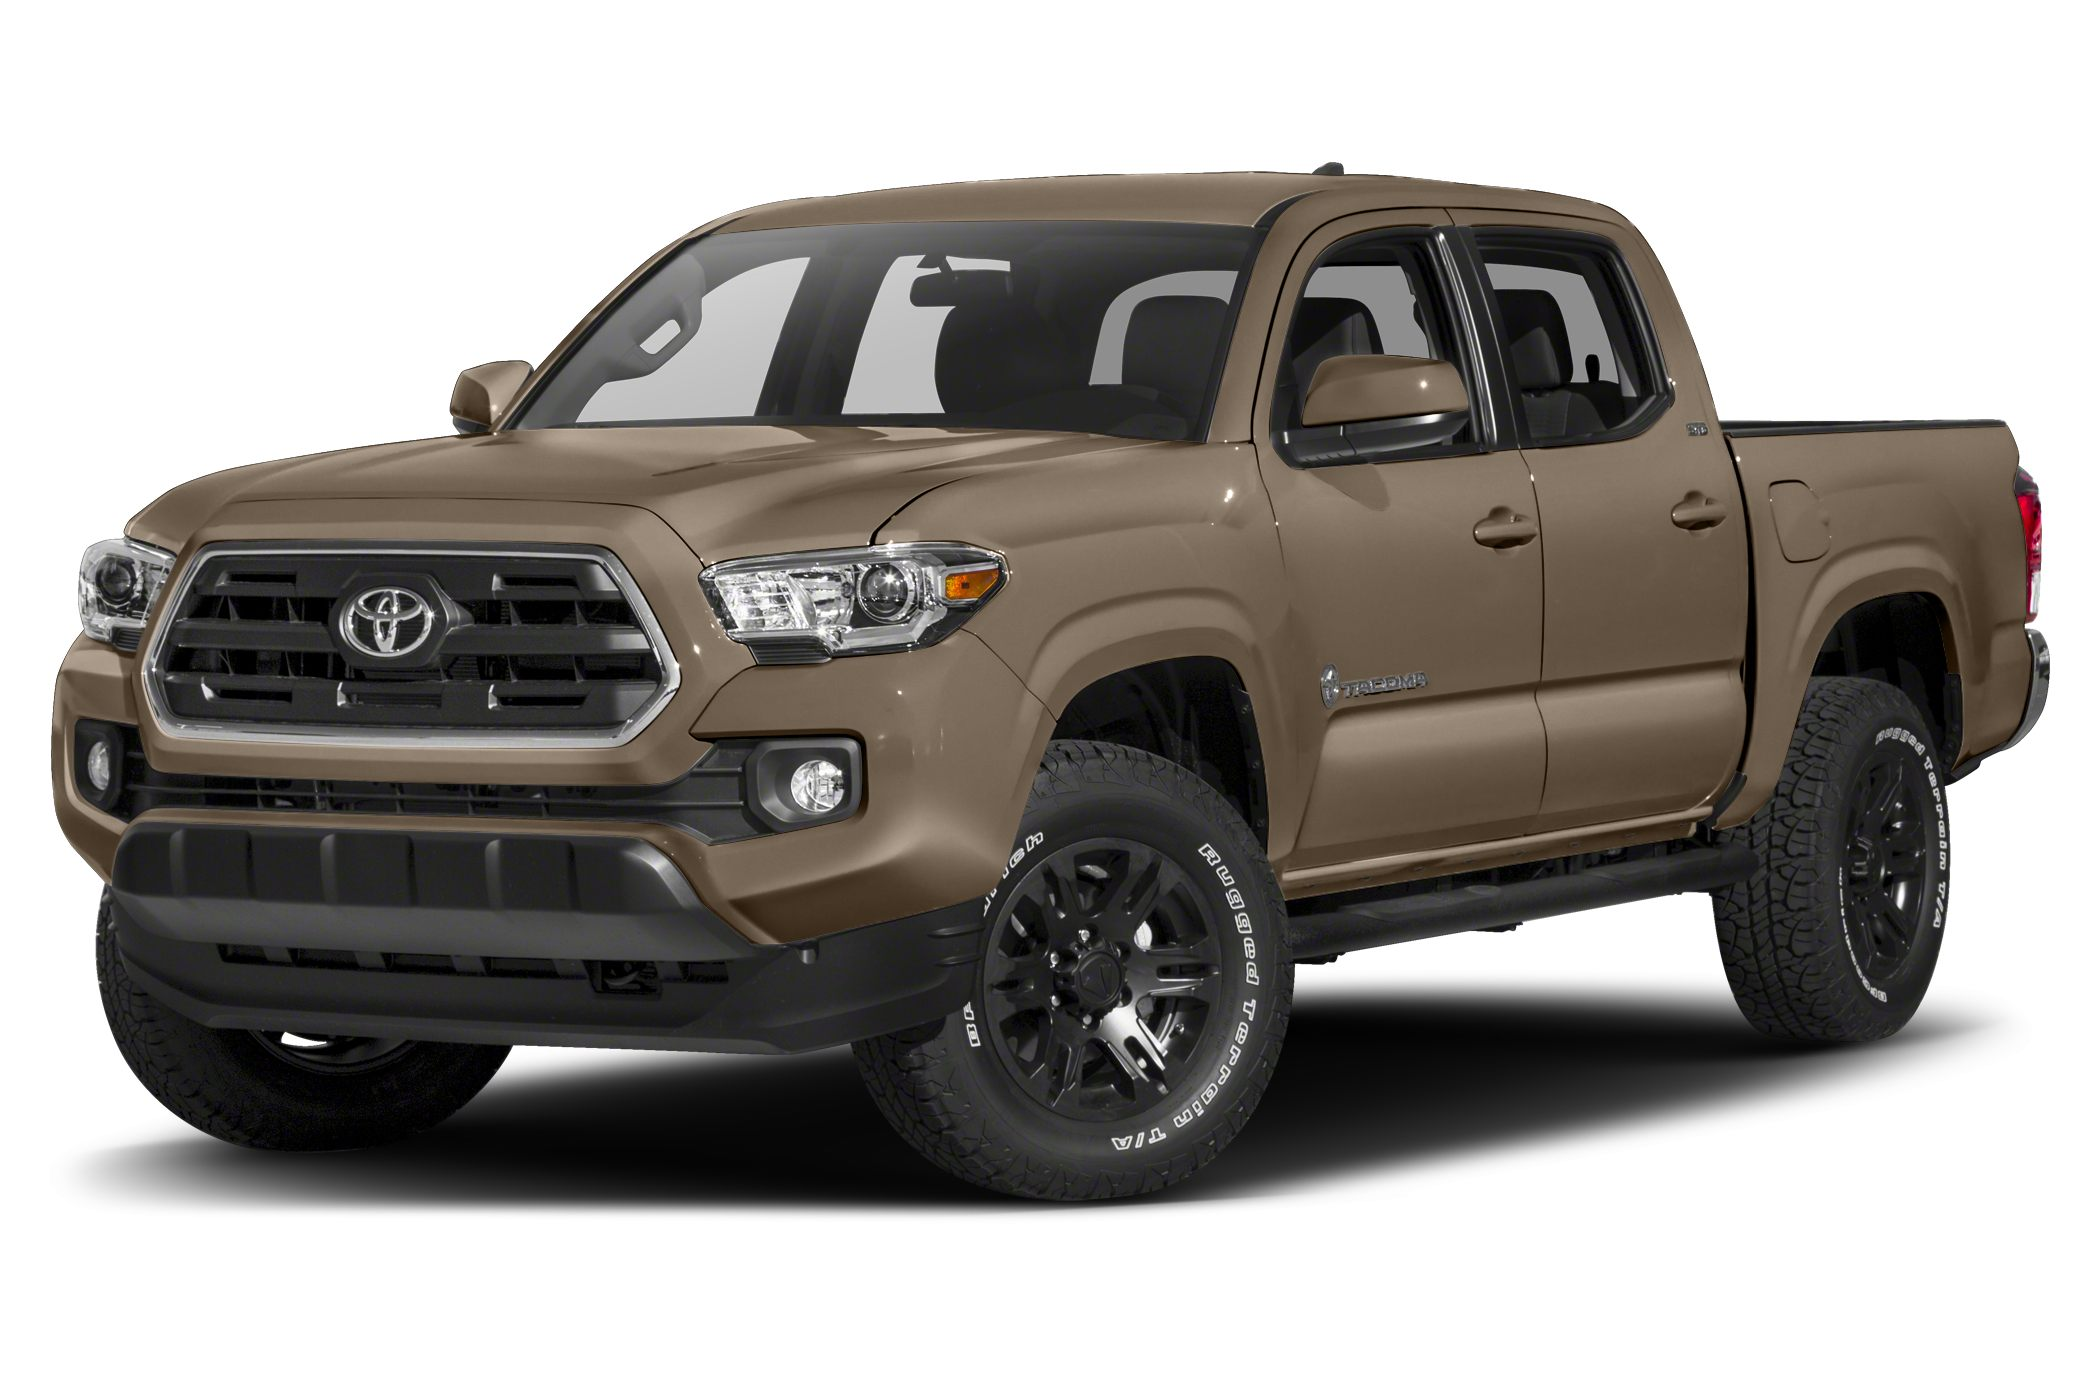 2017 Toyota Tacoma SR5 V6 4x4 Double Cab 140.6 in. WB